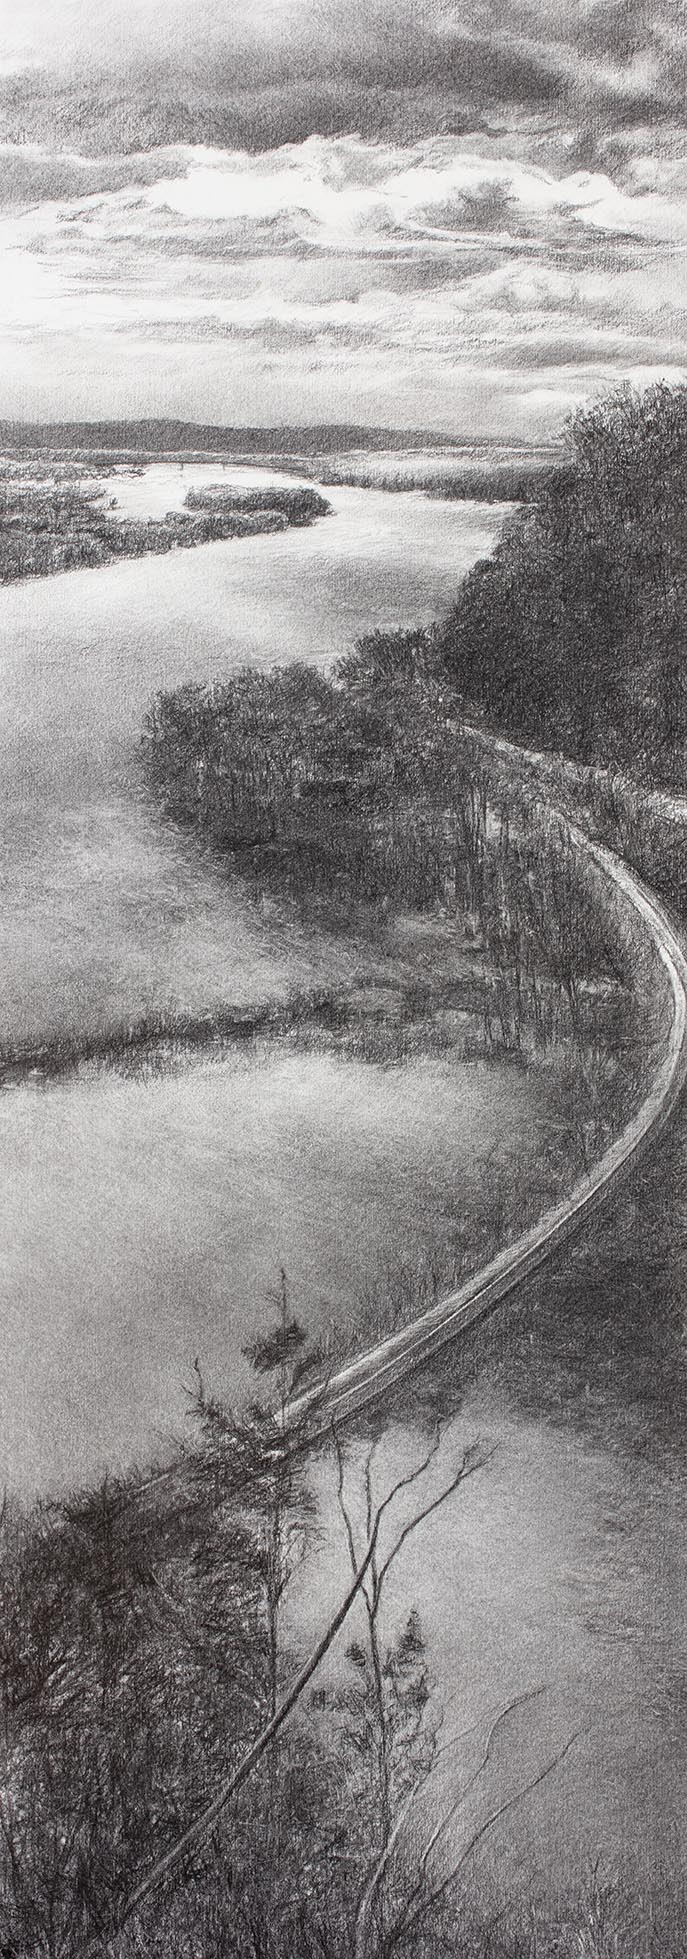 Effigy Mounds Overlook drawing by Barbara Fedeler